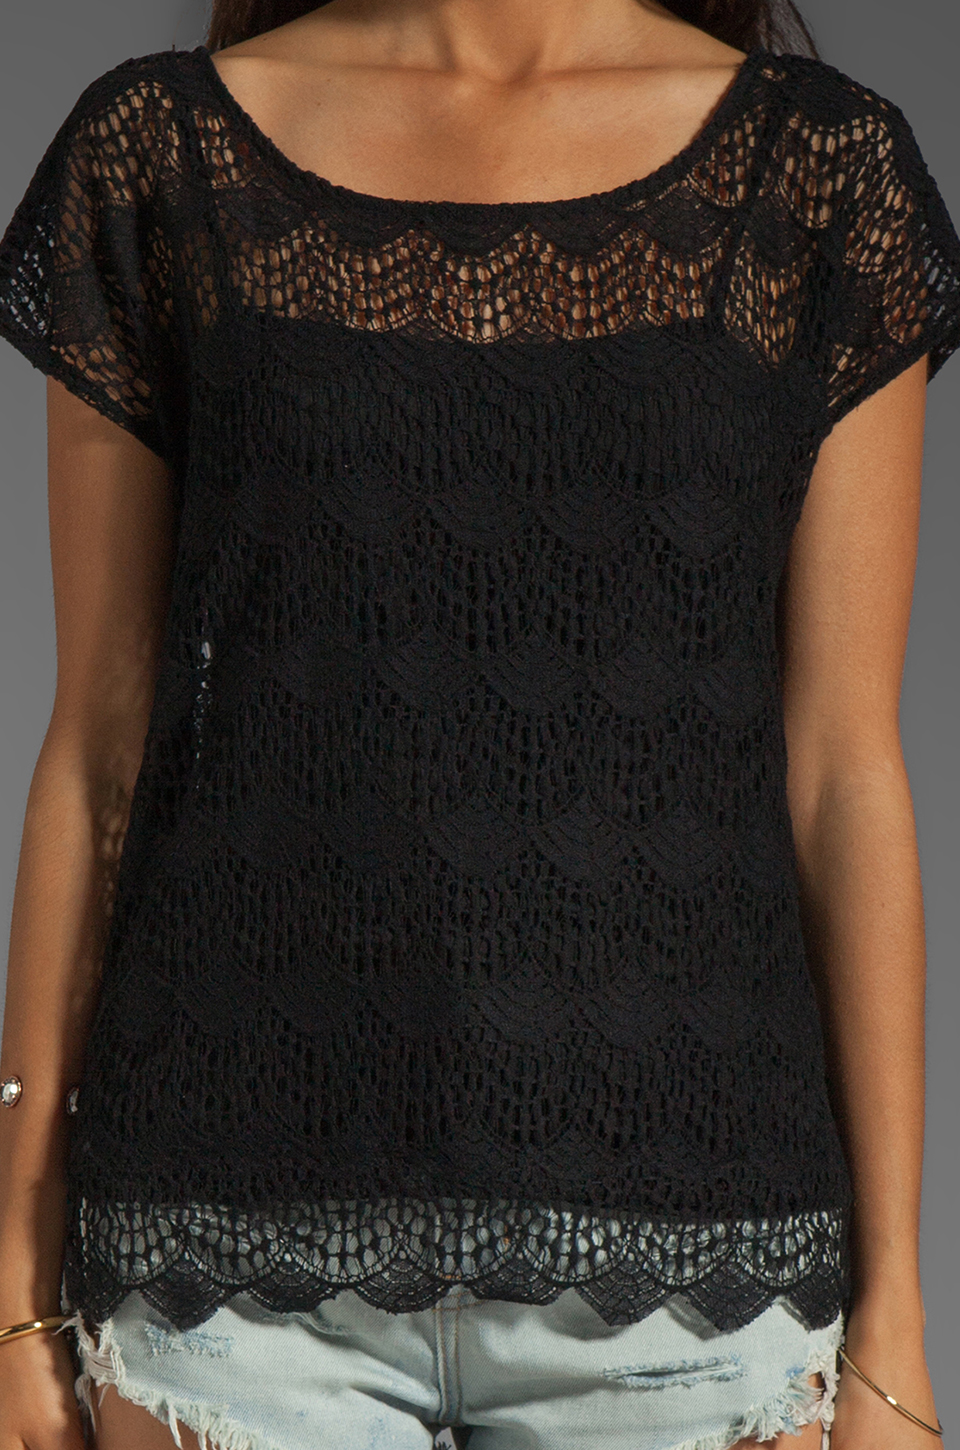 Ella Moss Jasmine Lace Top in Black